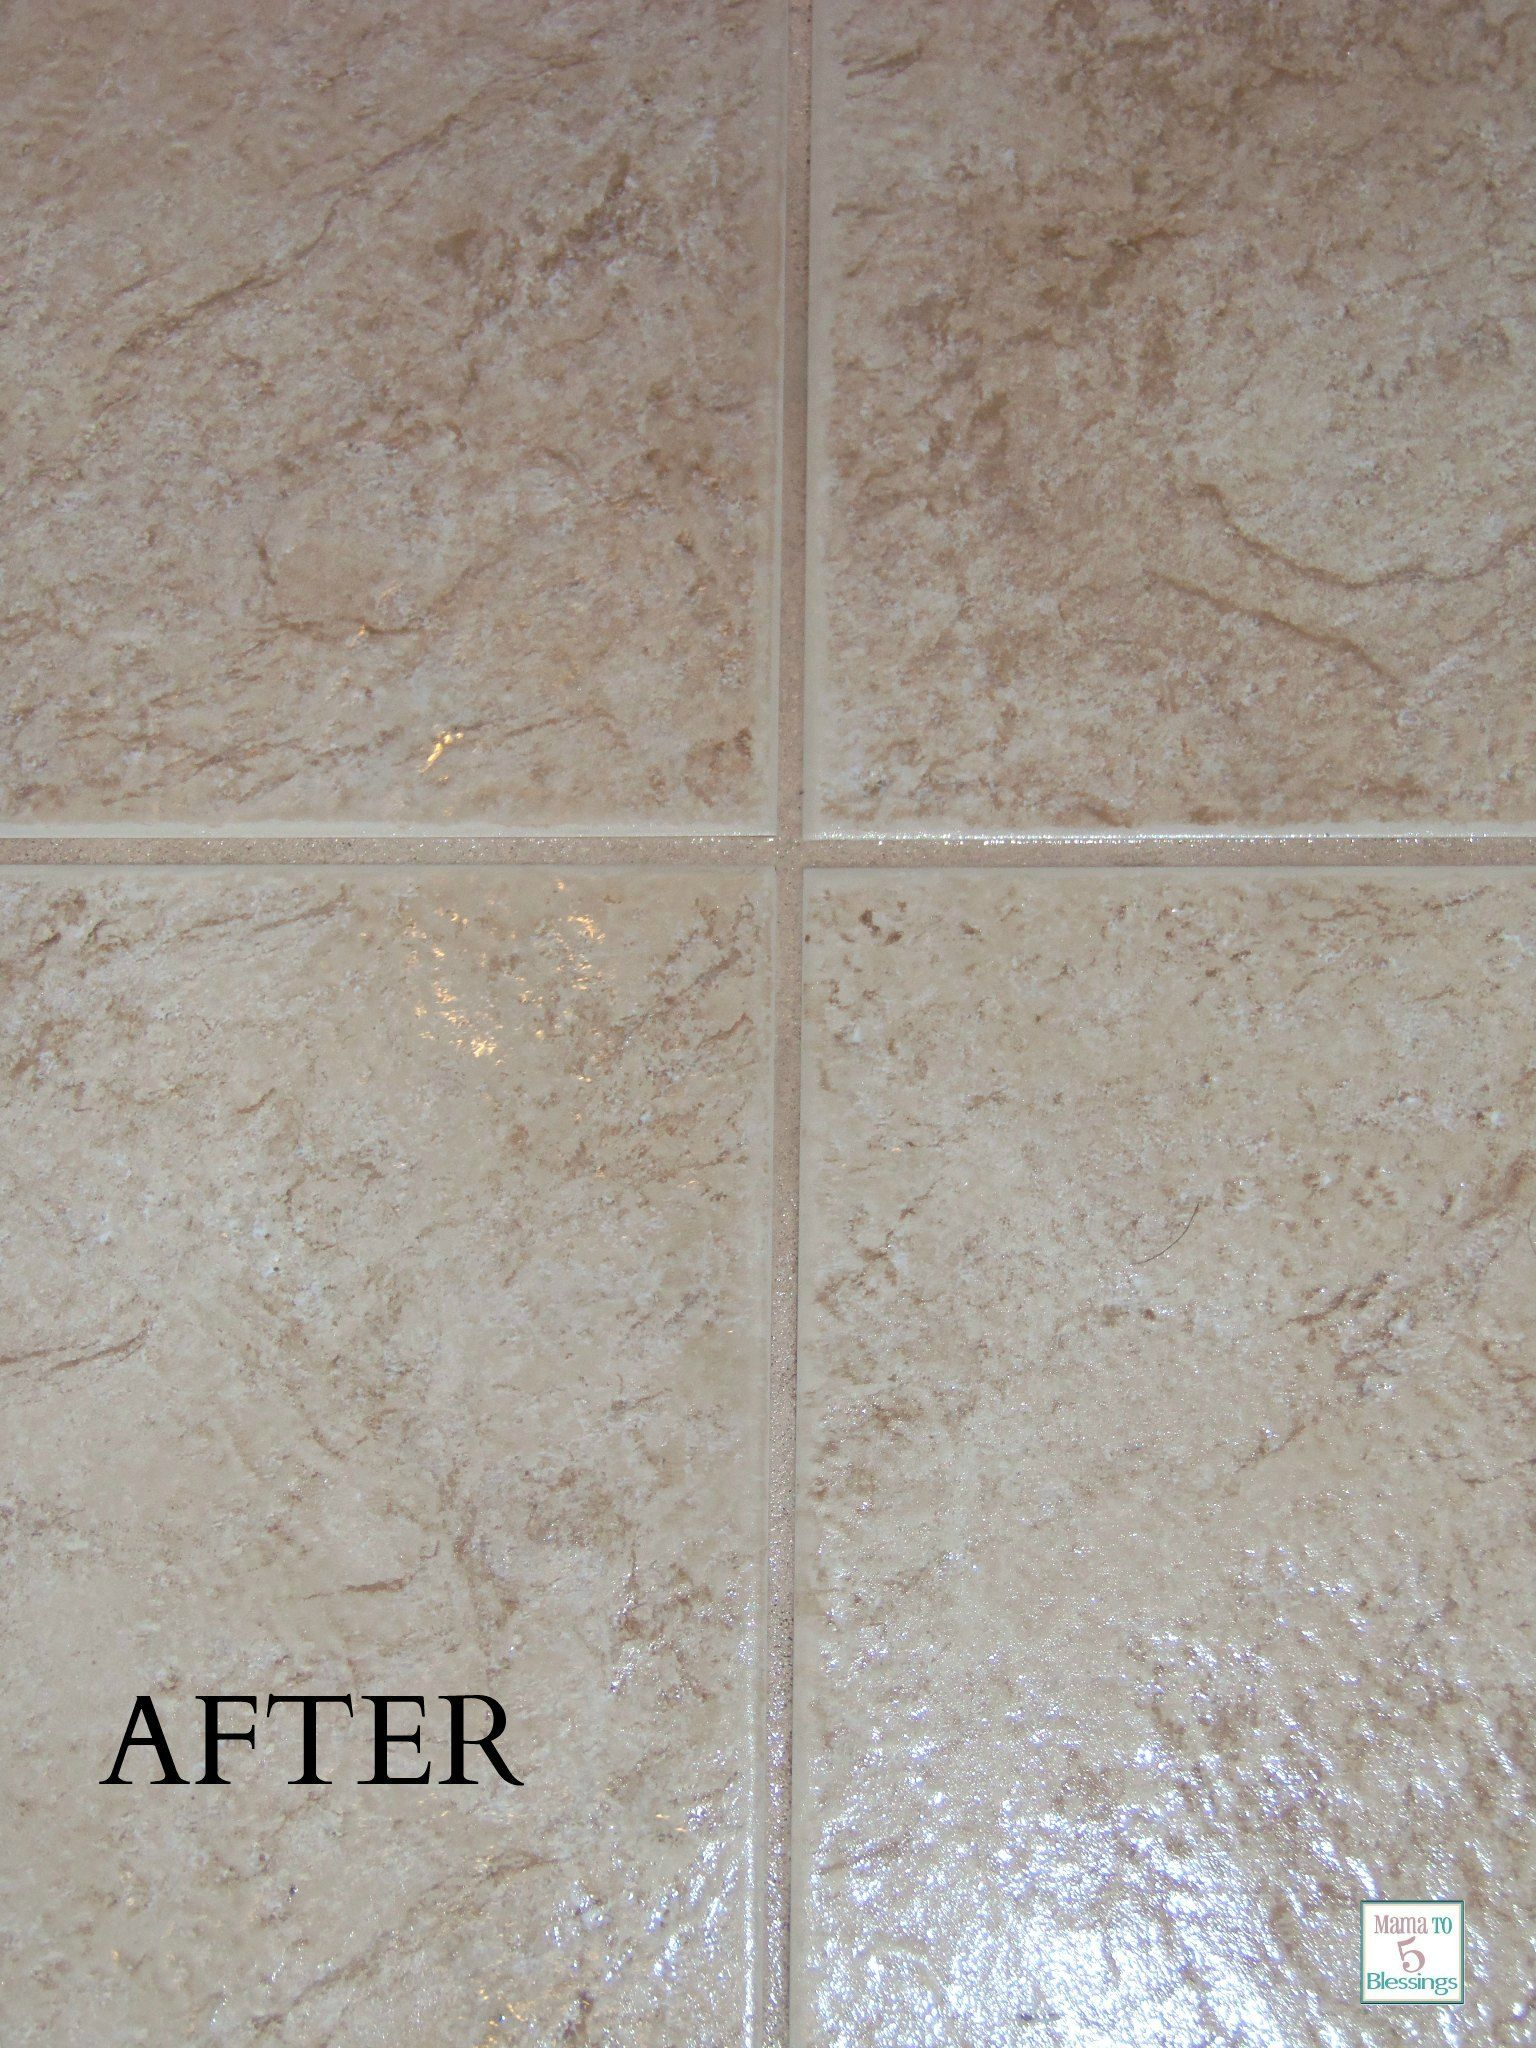 Grout cleaner tile flooring natural grout cleaner natural cleaning tile grout the natural way dailygadgetfo Choice Image